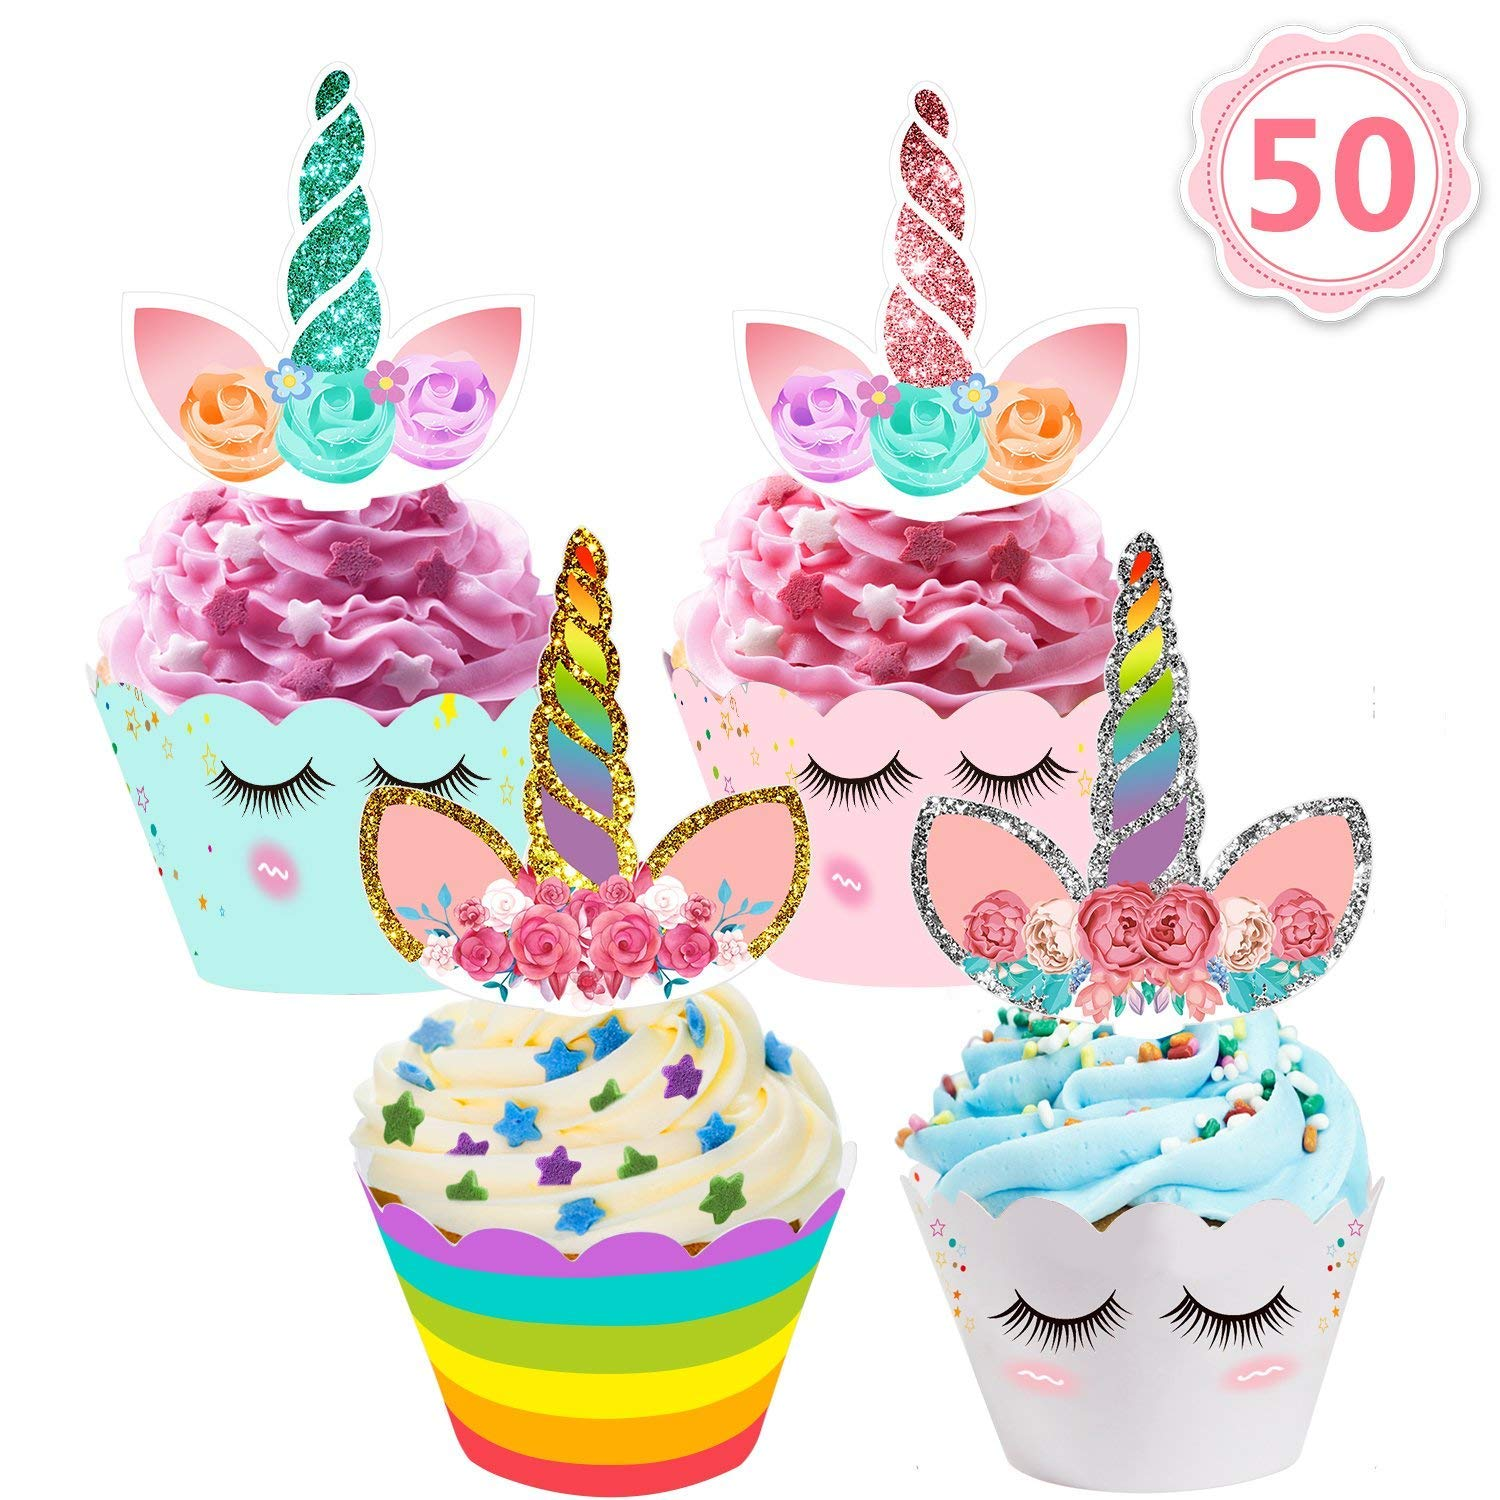 MIBOTE (70PCS) 50 Pack Unicorn Cupcake Toppers and Wrappers + 20 Pack 12'' Unicorn Balloons Party Supplies Set for Women Kids Baby Shower Birthday Party Favor by MIBOTE